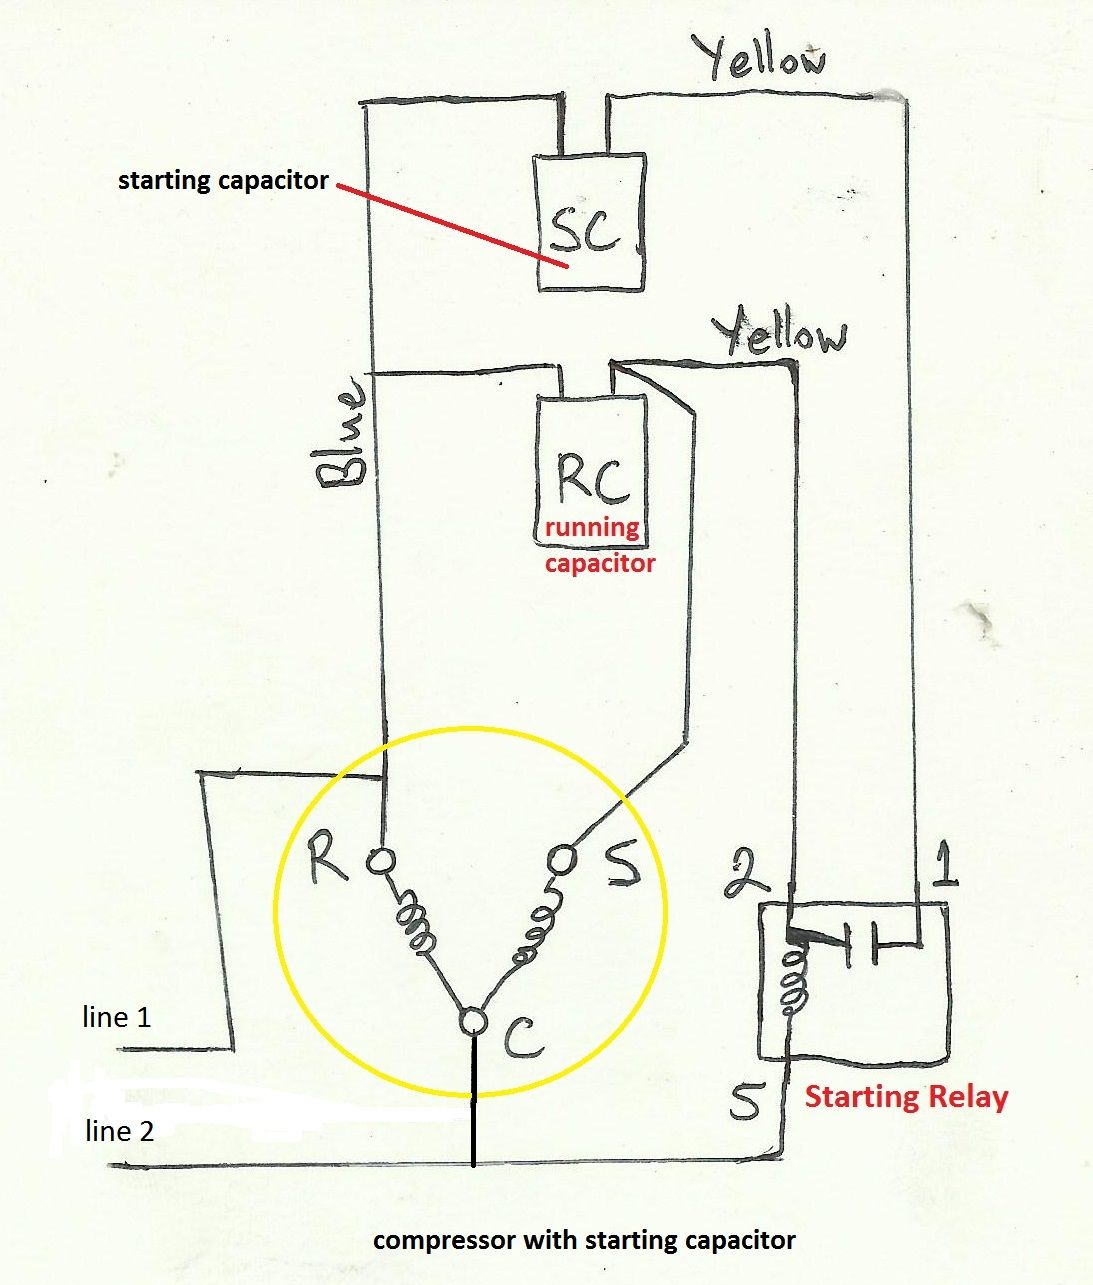 air compressor 115v wiring schematic air compressor capacitor wiring diagram before you call a ... husky air compressor 230v wiring diagram #12